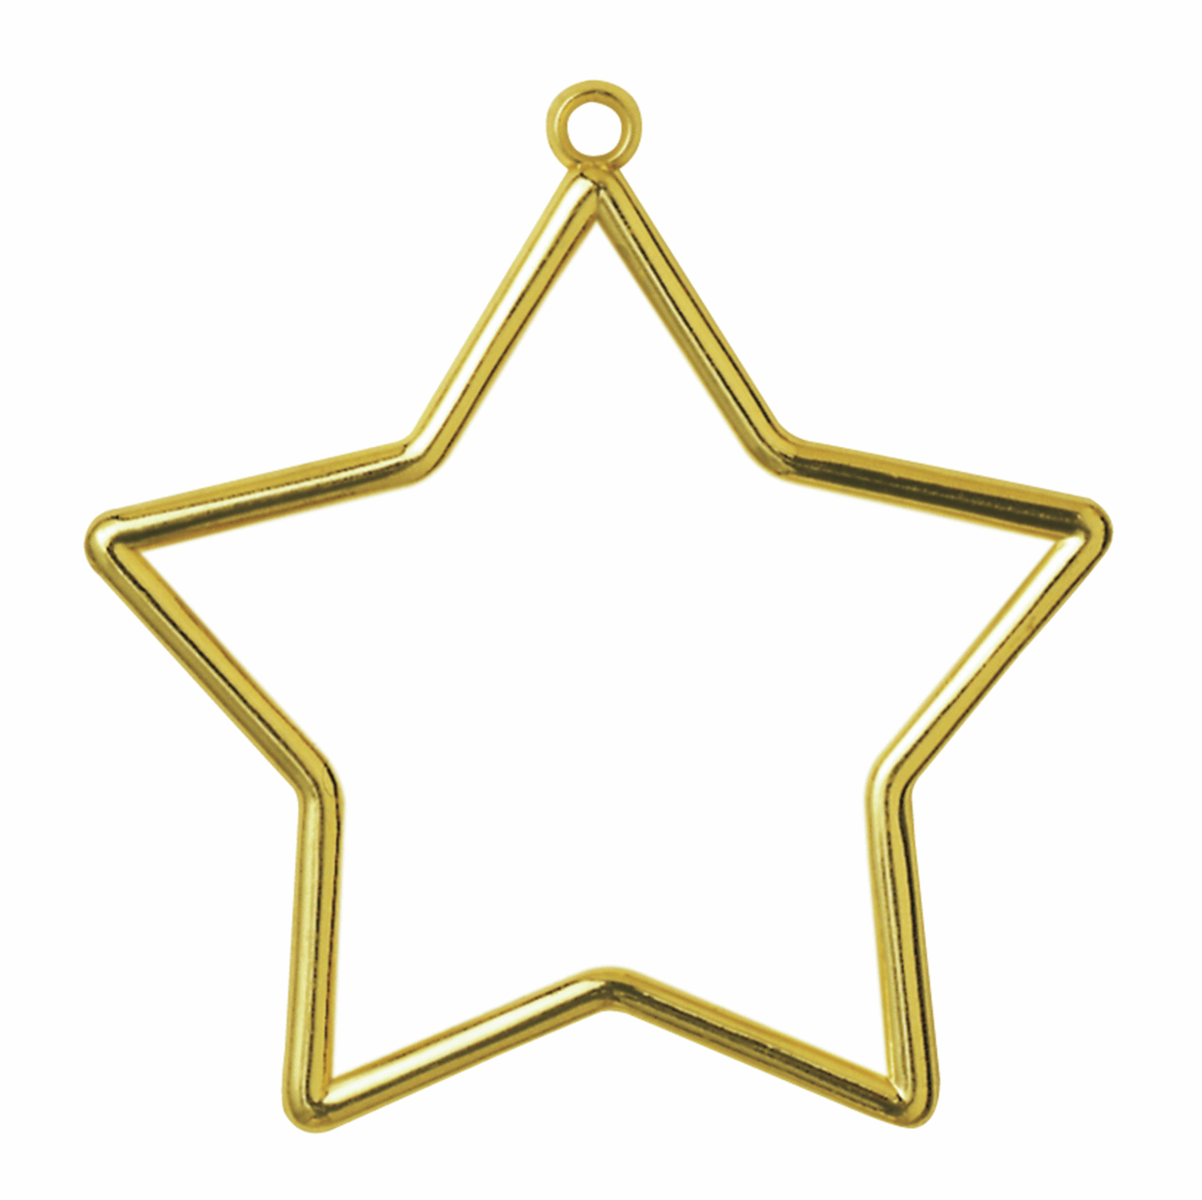 Plastic Star Shaped Frame - Gold